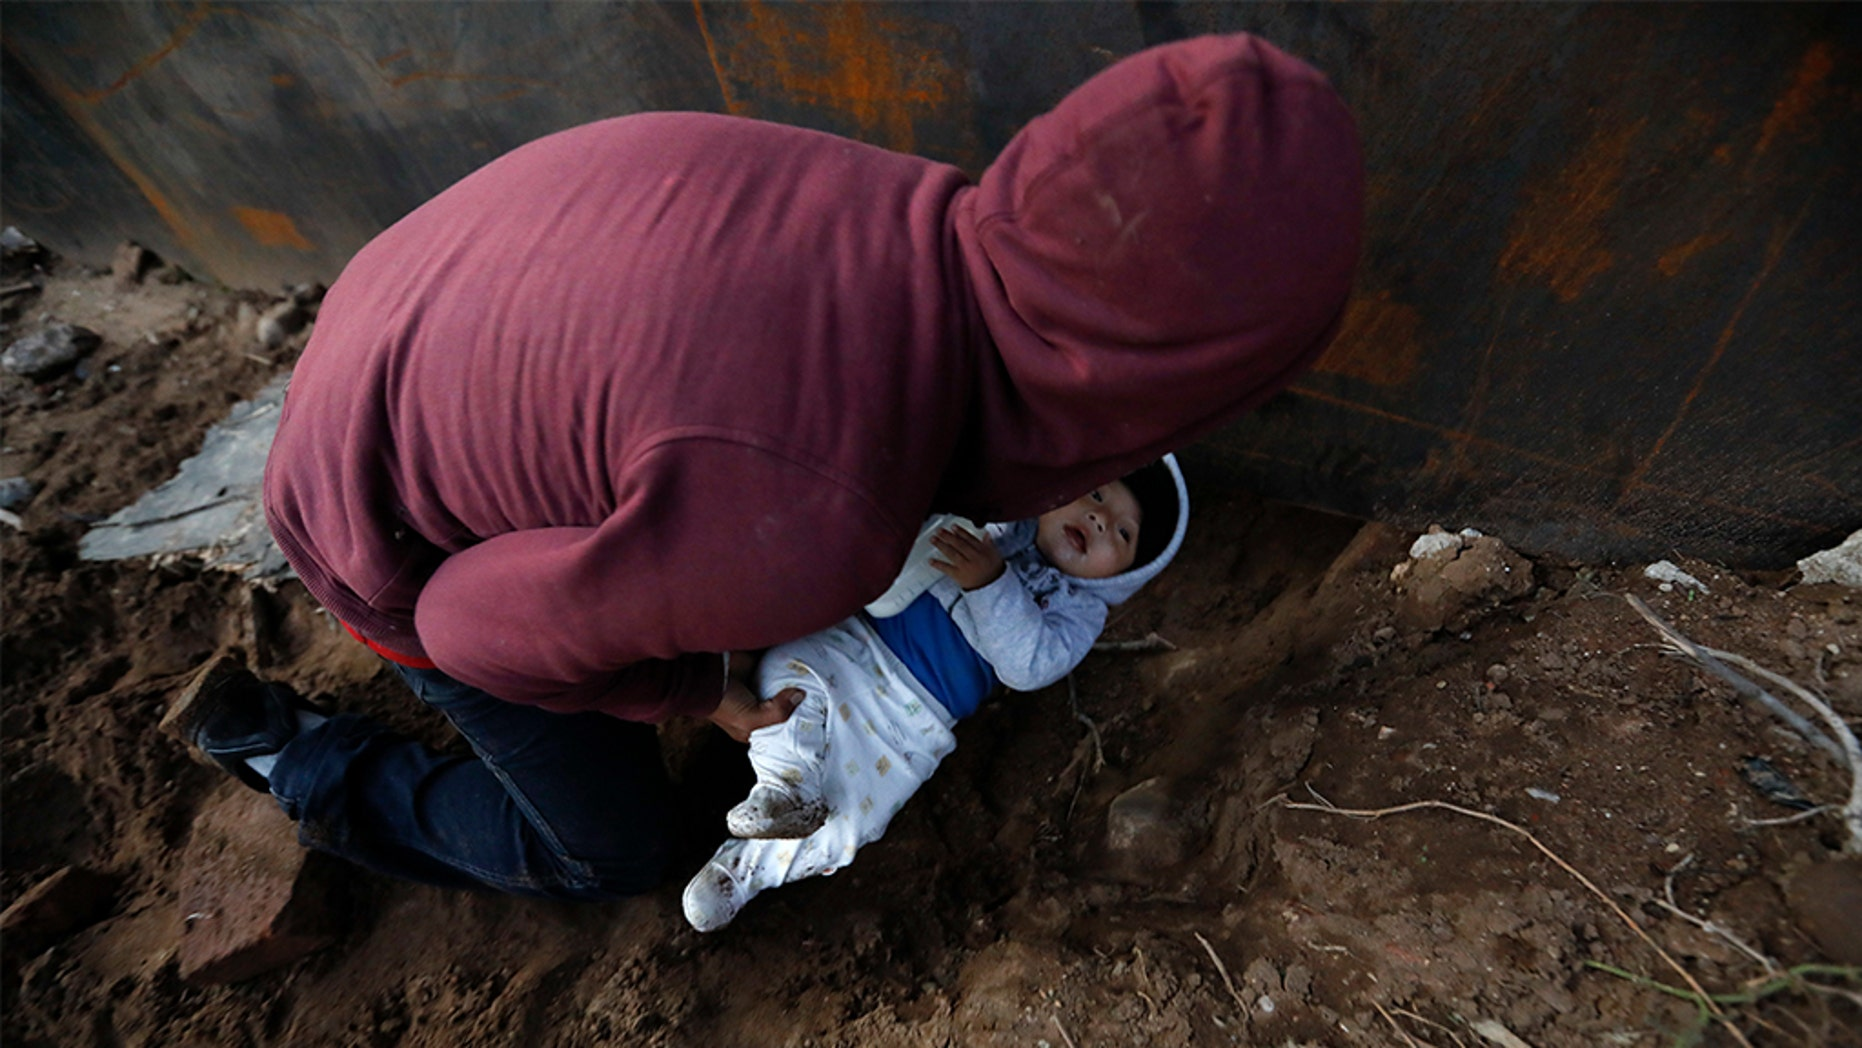 Pregnant Honduran woman scales border wall to give birth in US